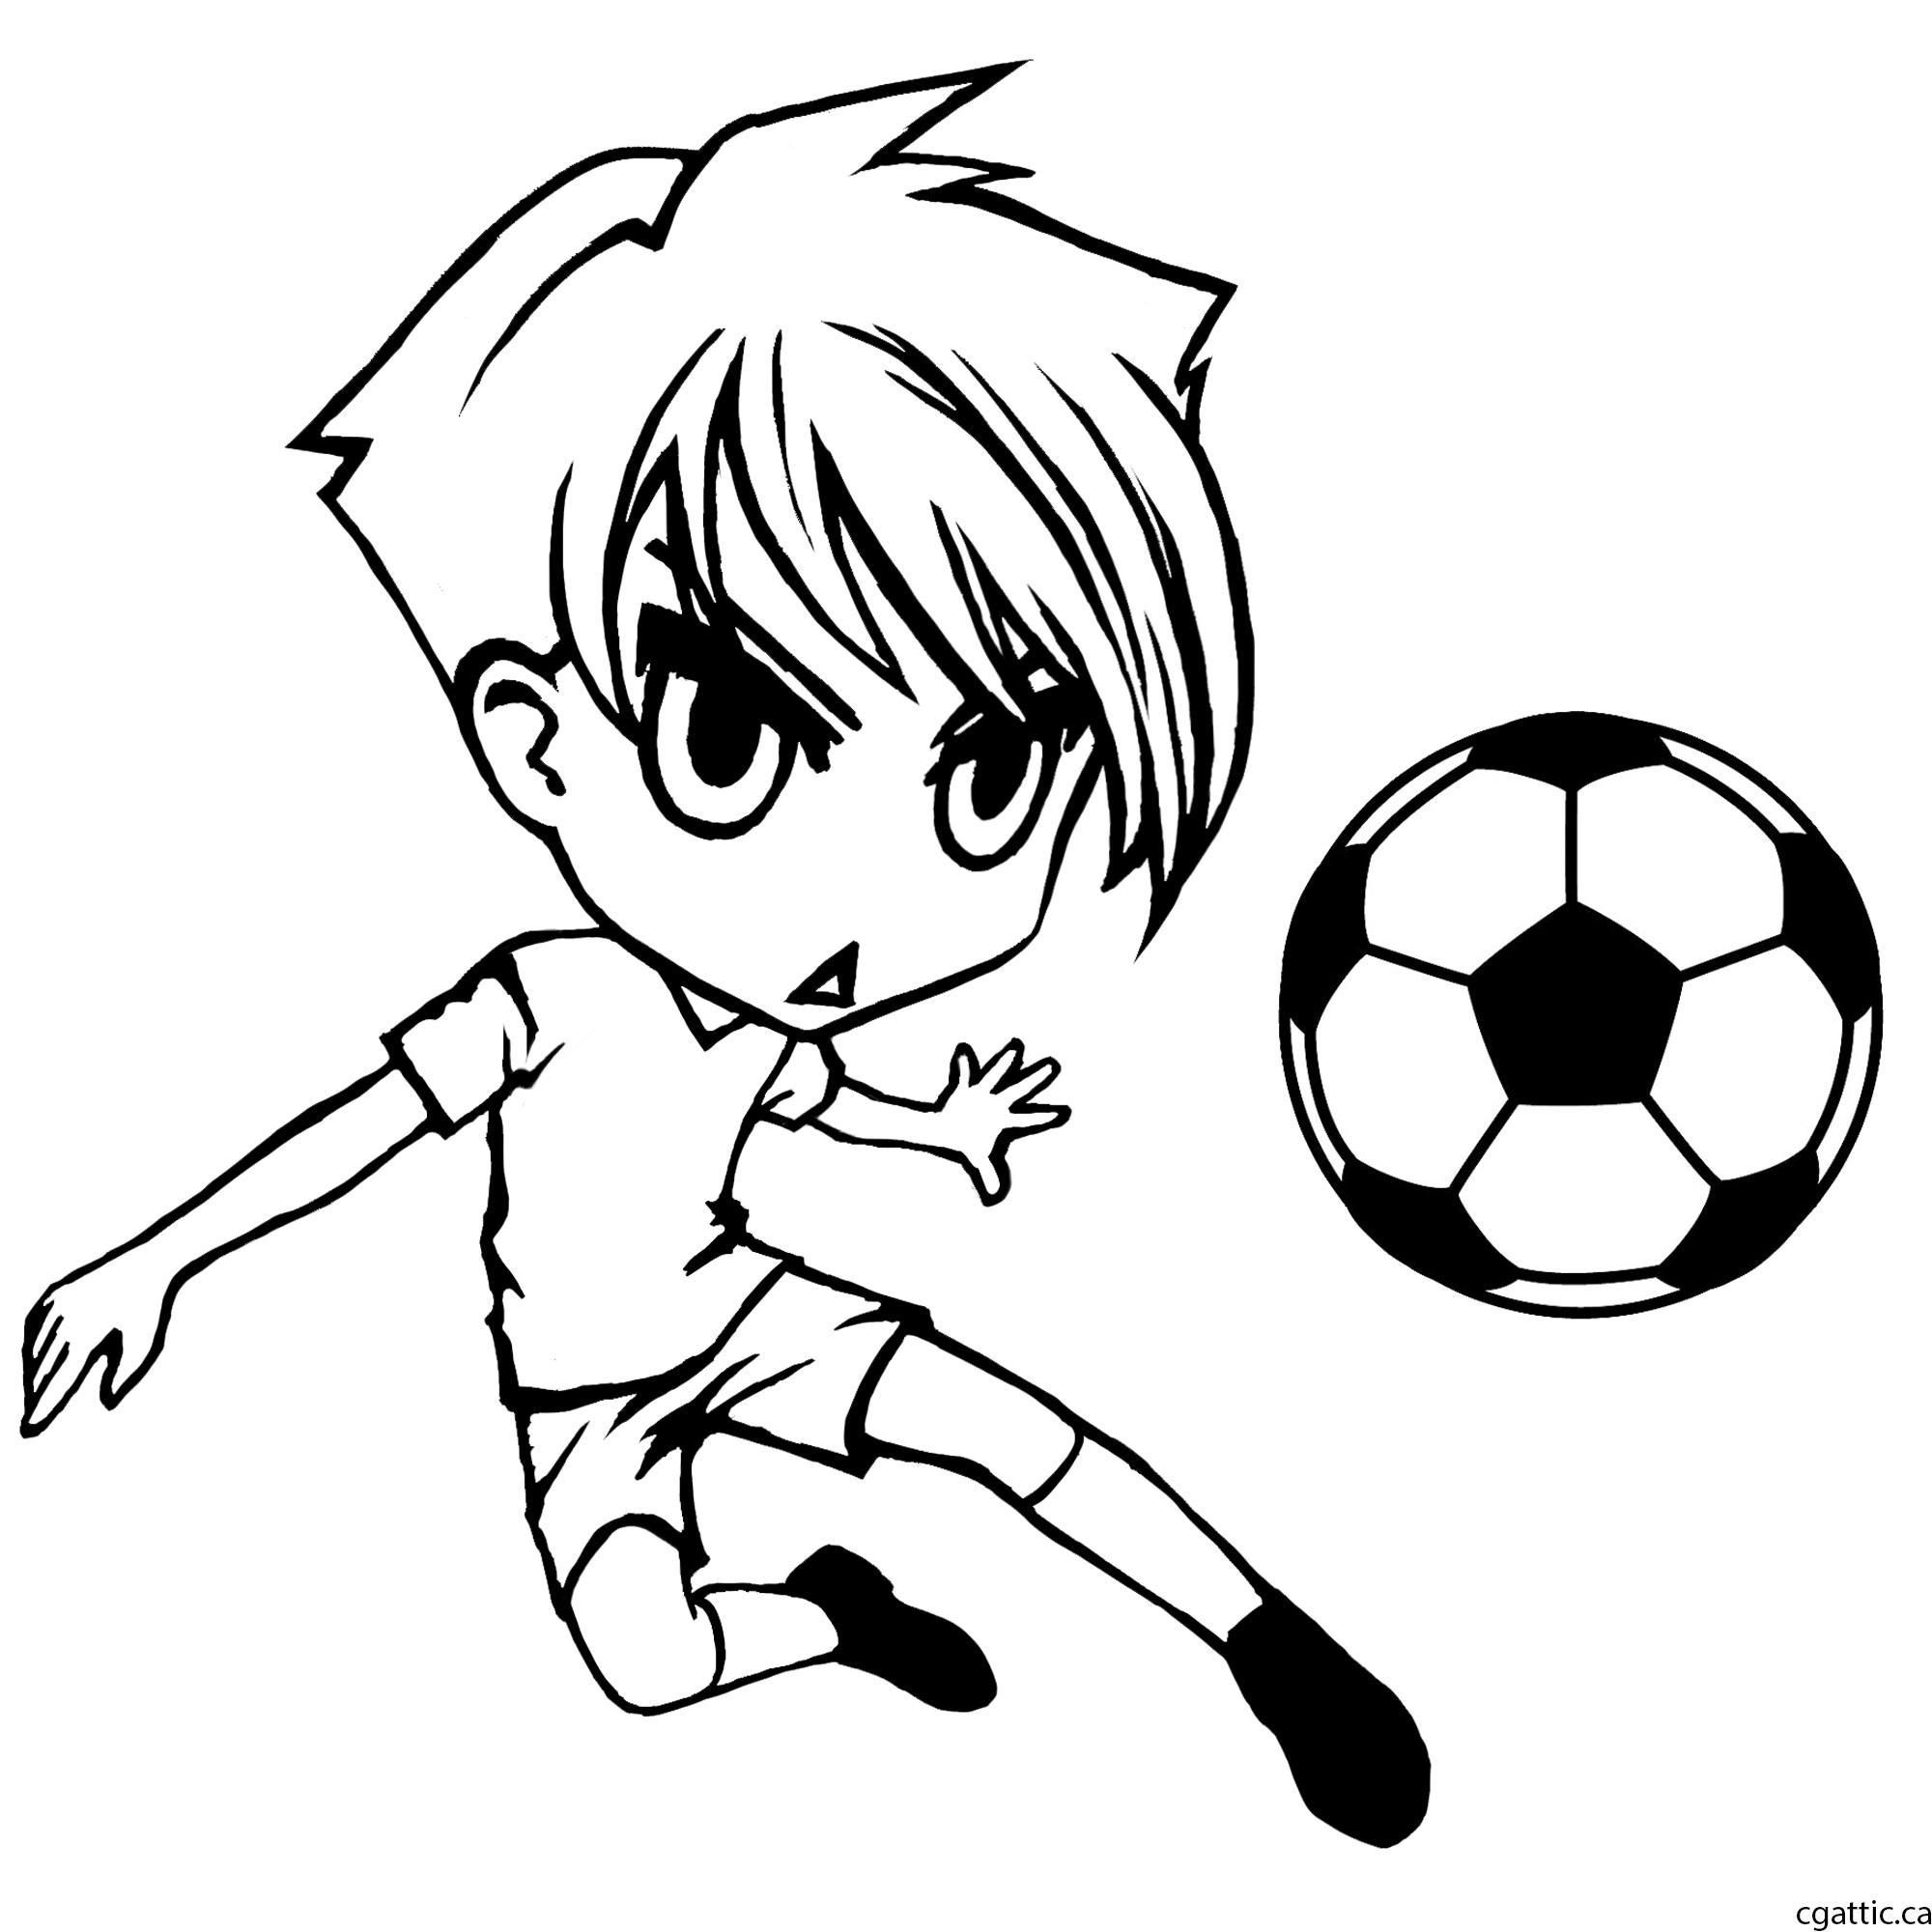 draw a football player football player drawing at getdrawings free download football player draw a